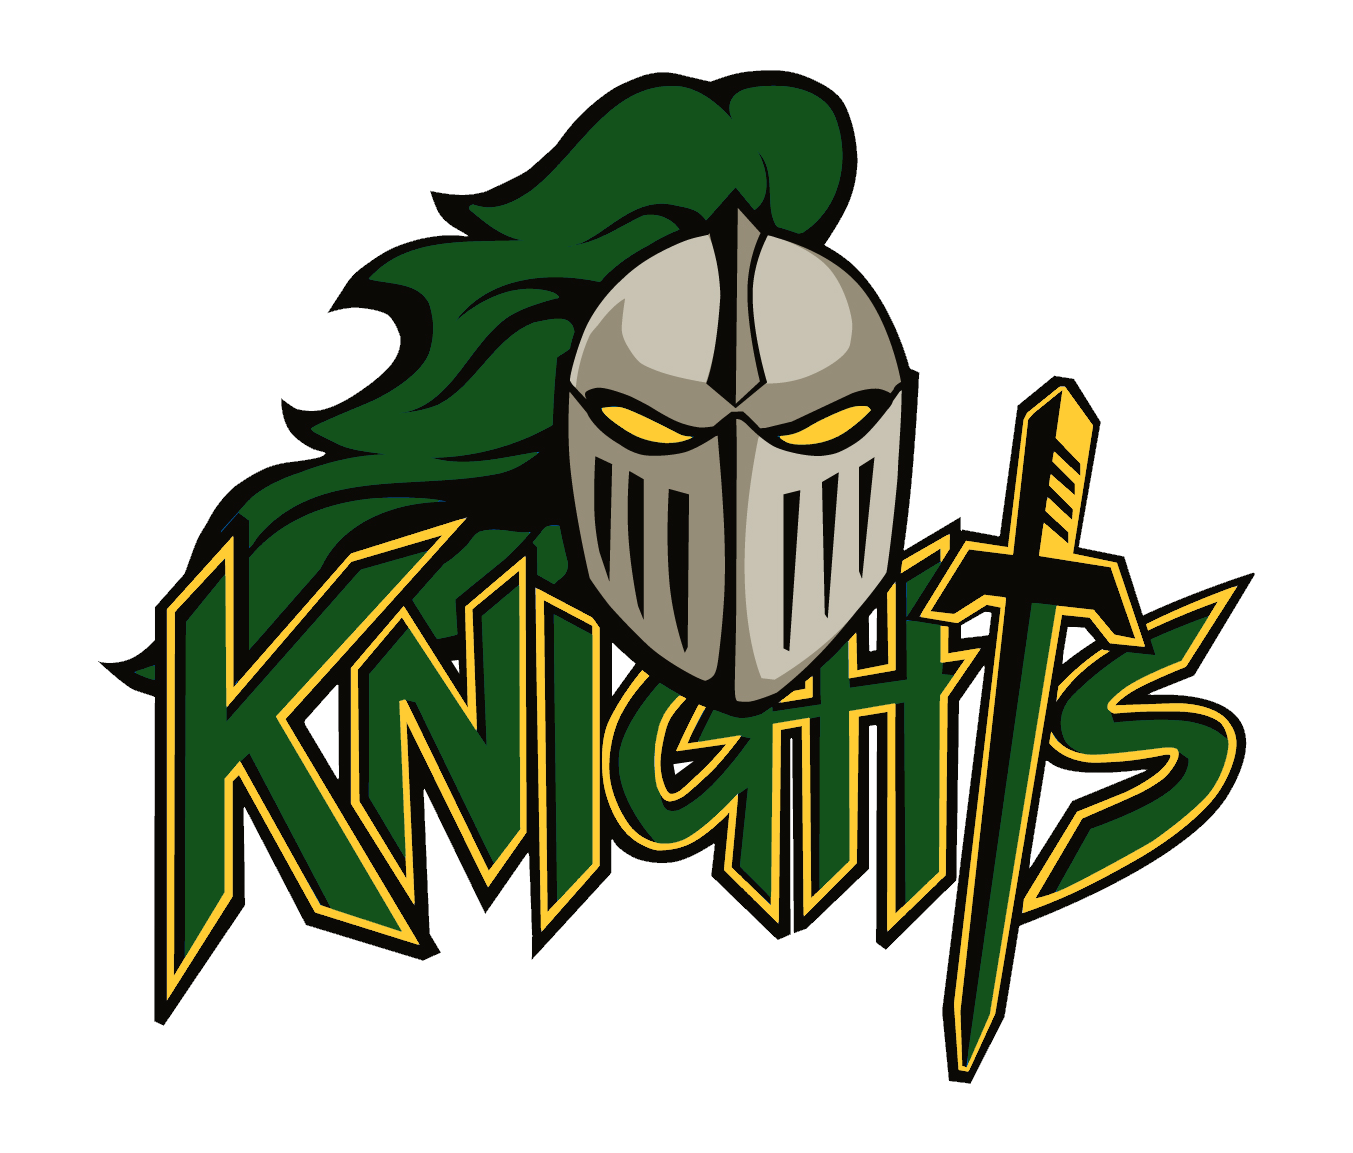 Knights clipart outline knight. North central team home